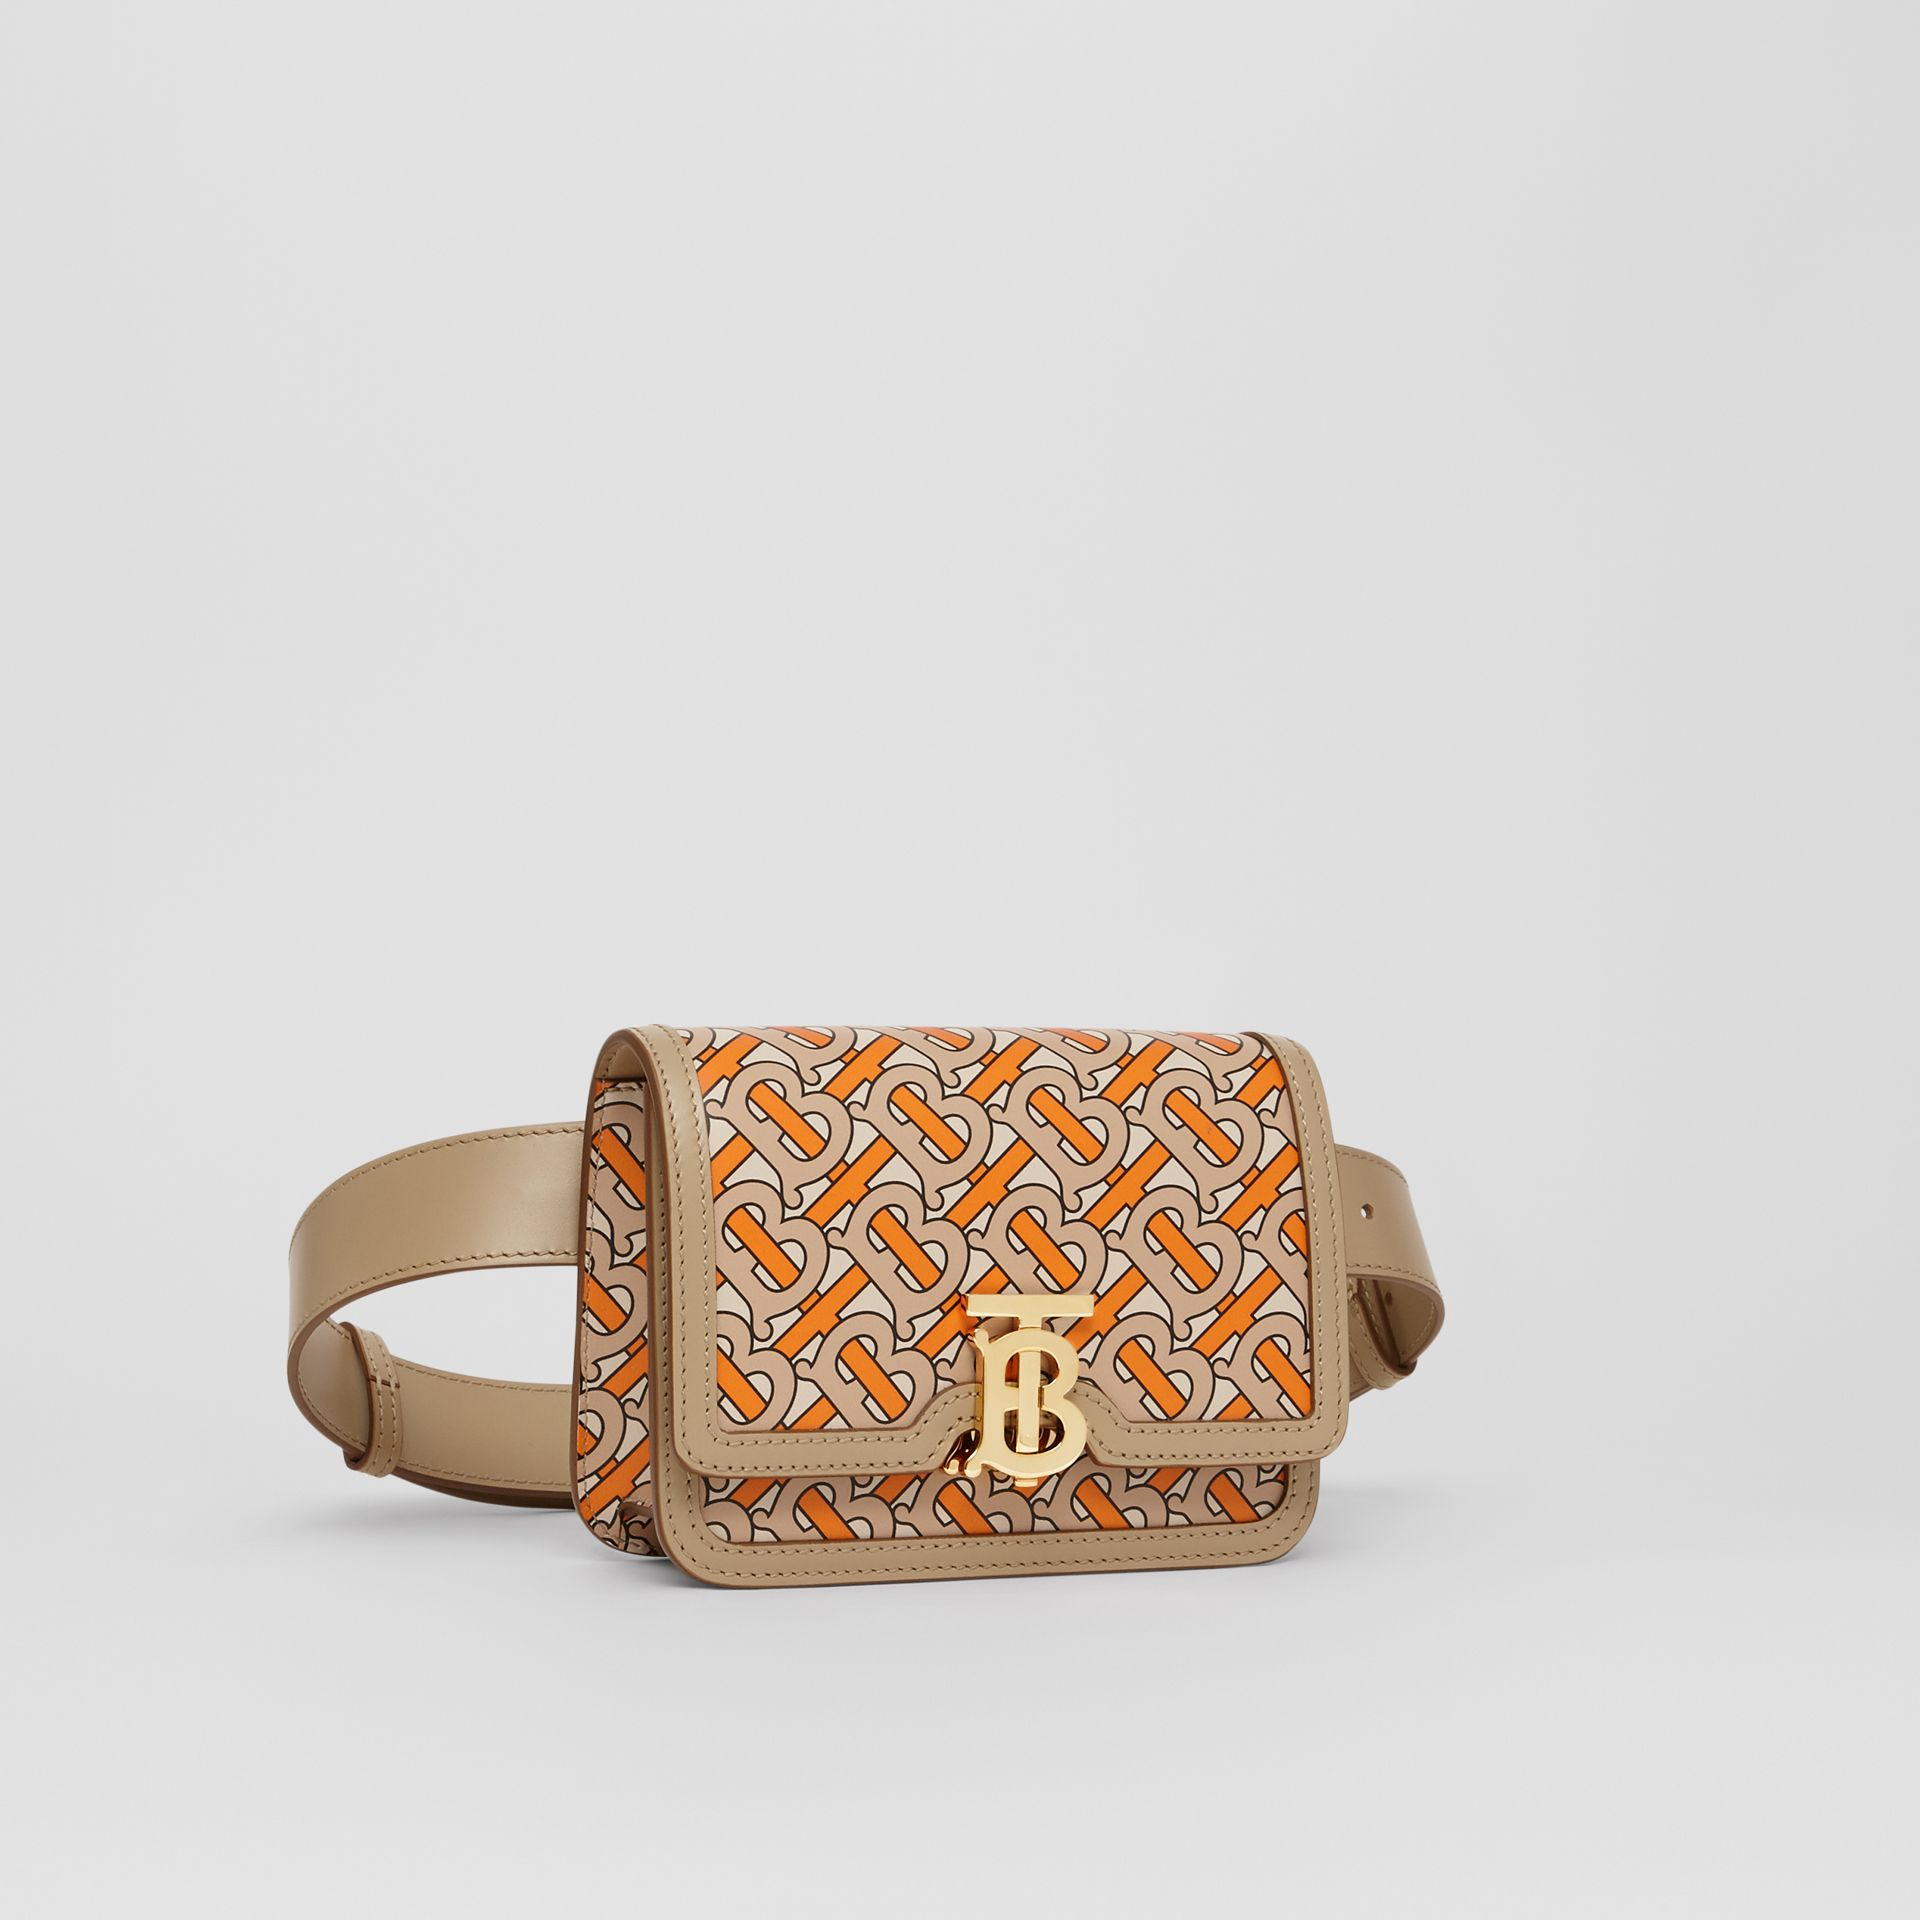 Belted Monogram Print Leather TB Bag in Bright Orange - Women | Burberry United Kingdom - gallery image 5